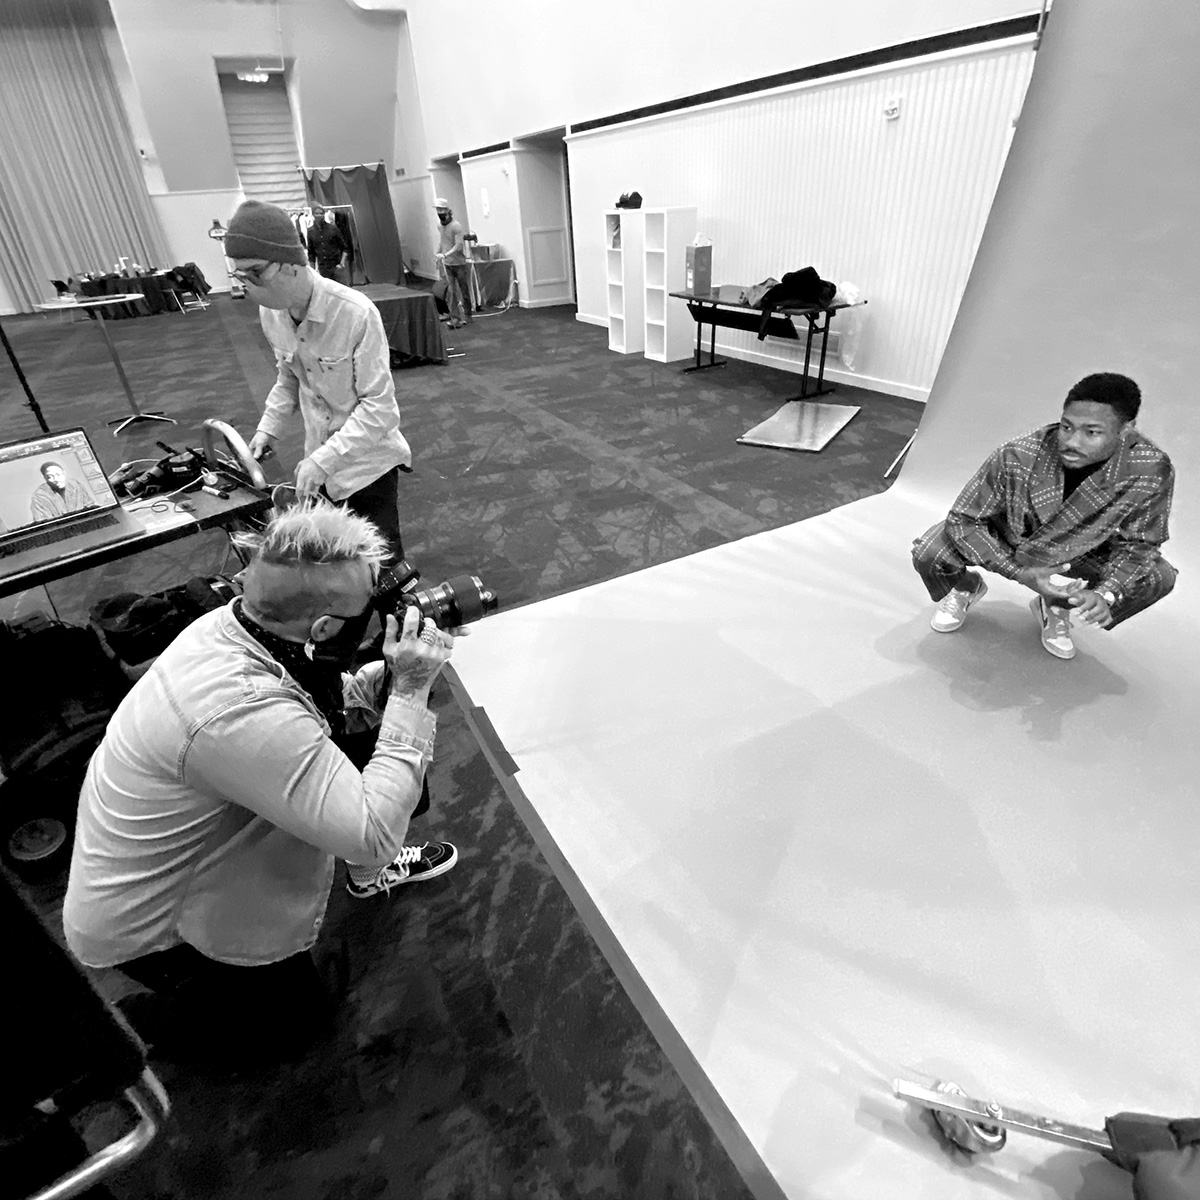 Editorial and commercial photographer Clay Patrick McBride photographs Stefon Diggs for ESPN.